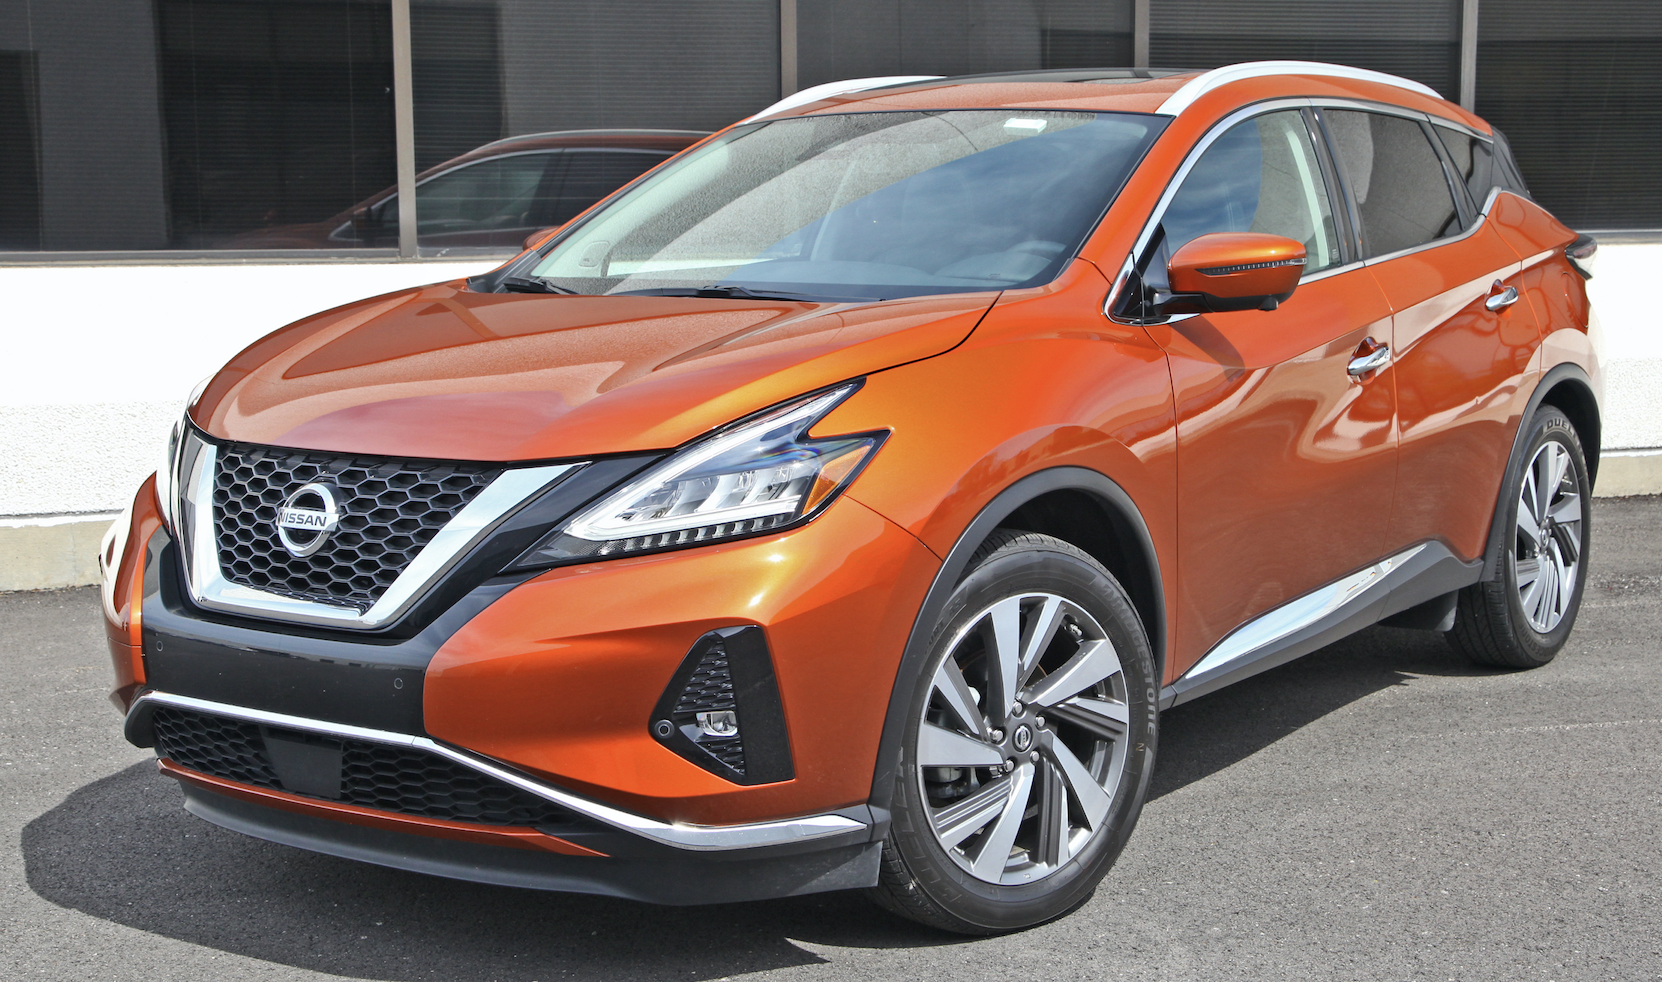 2019 Nissan Murano The Daily Drive | Consumer Guide®